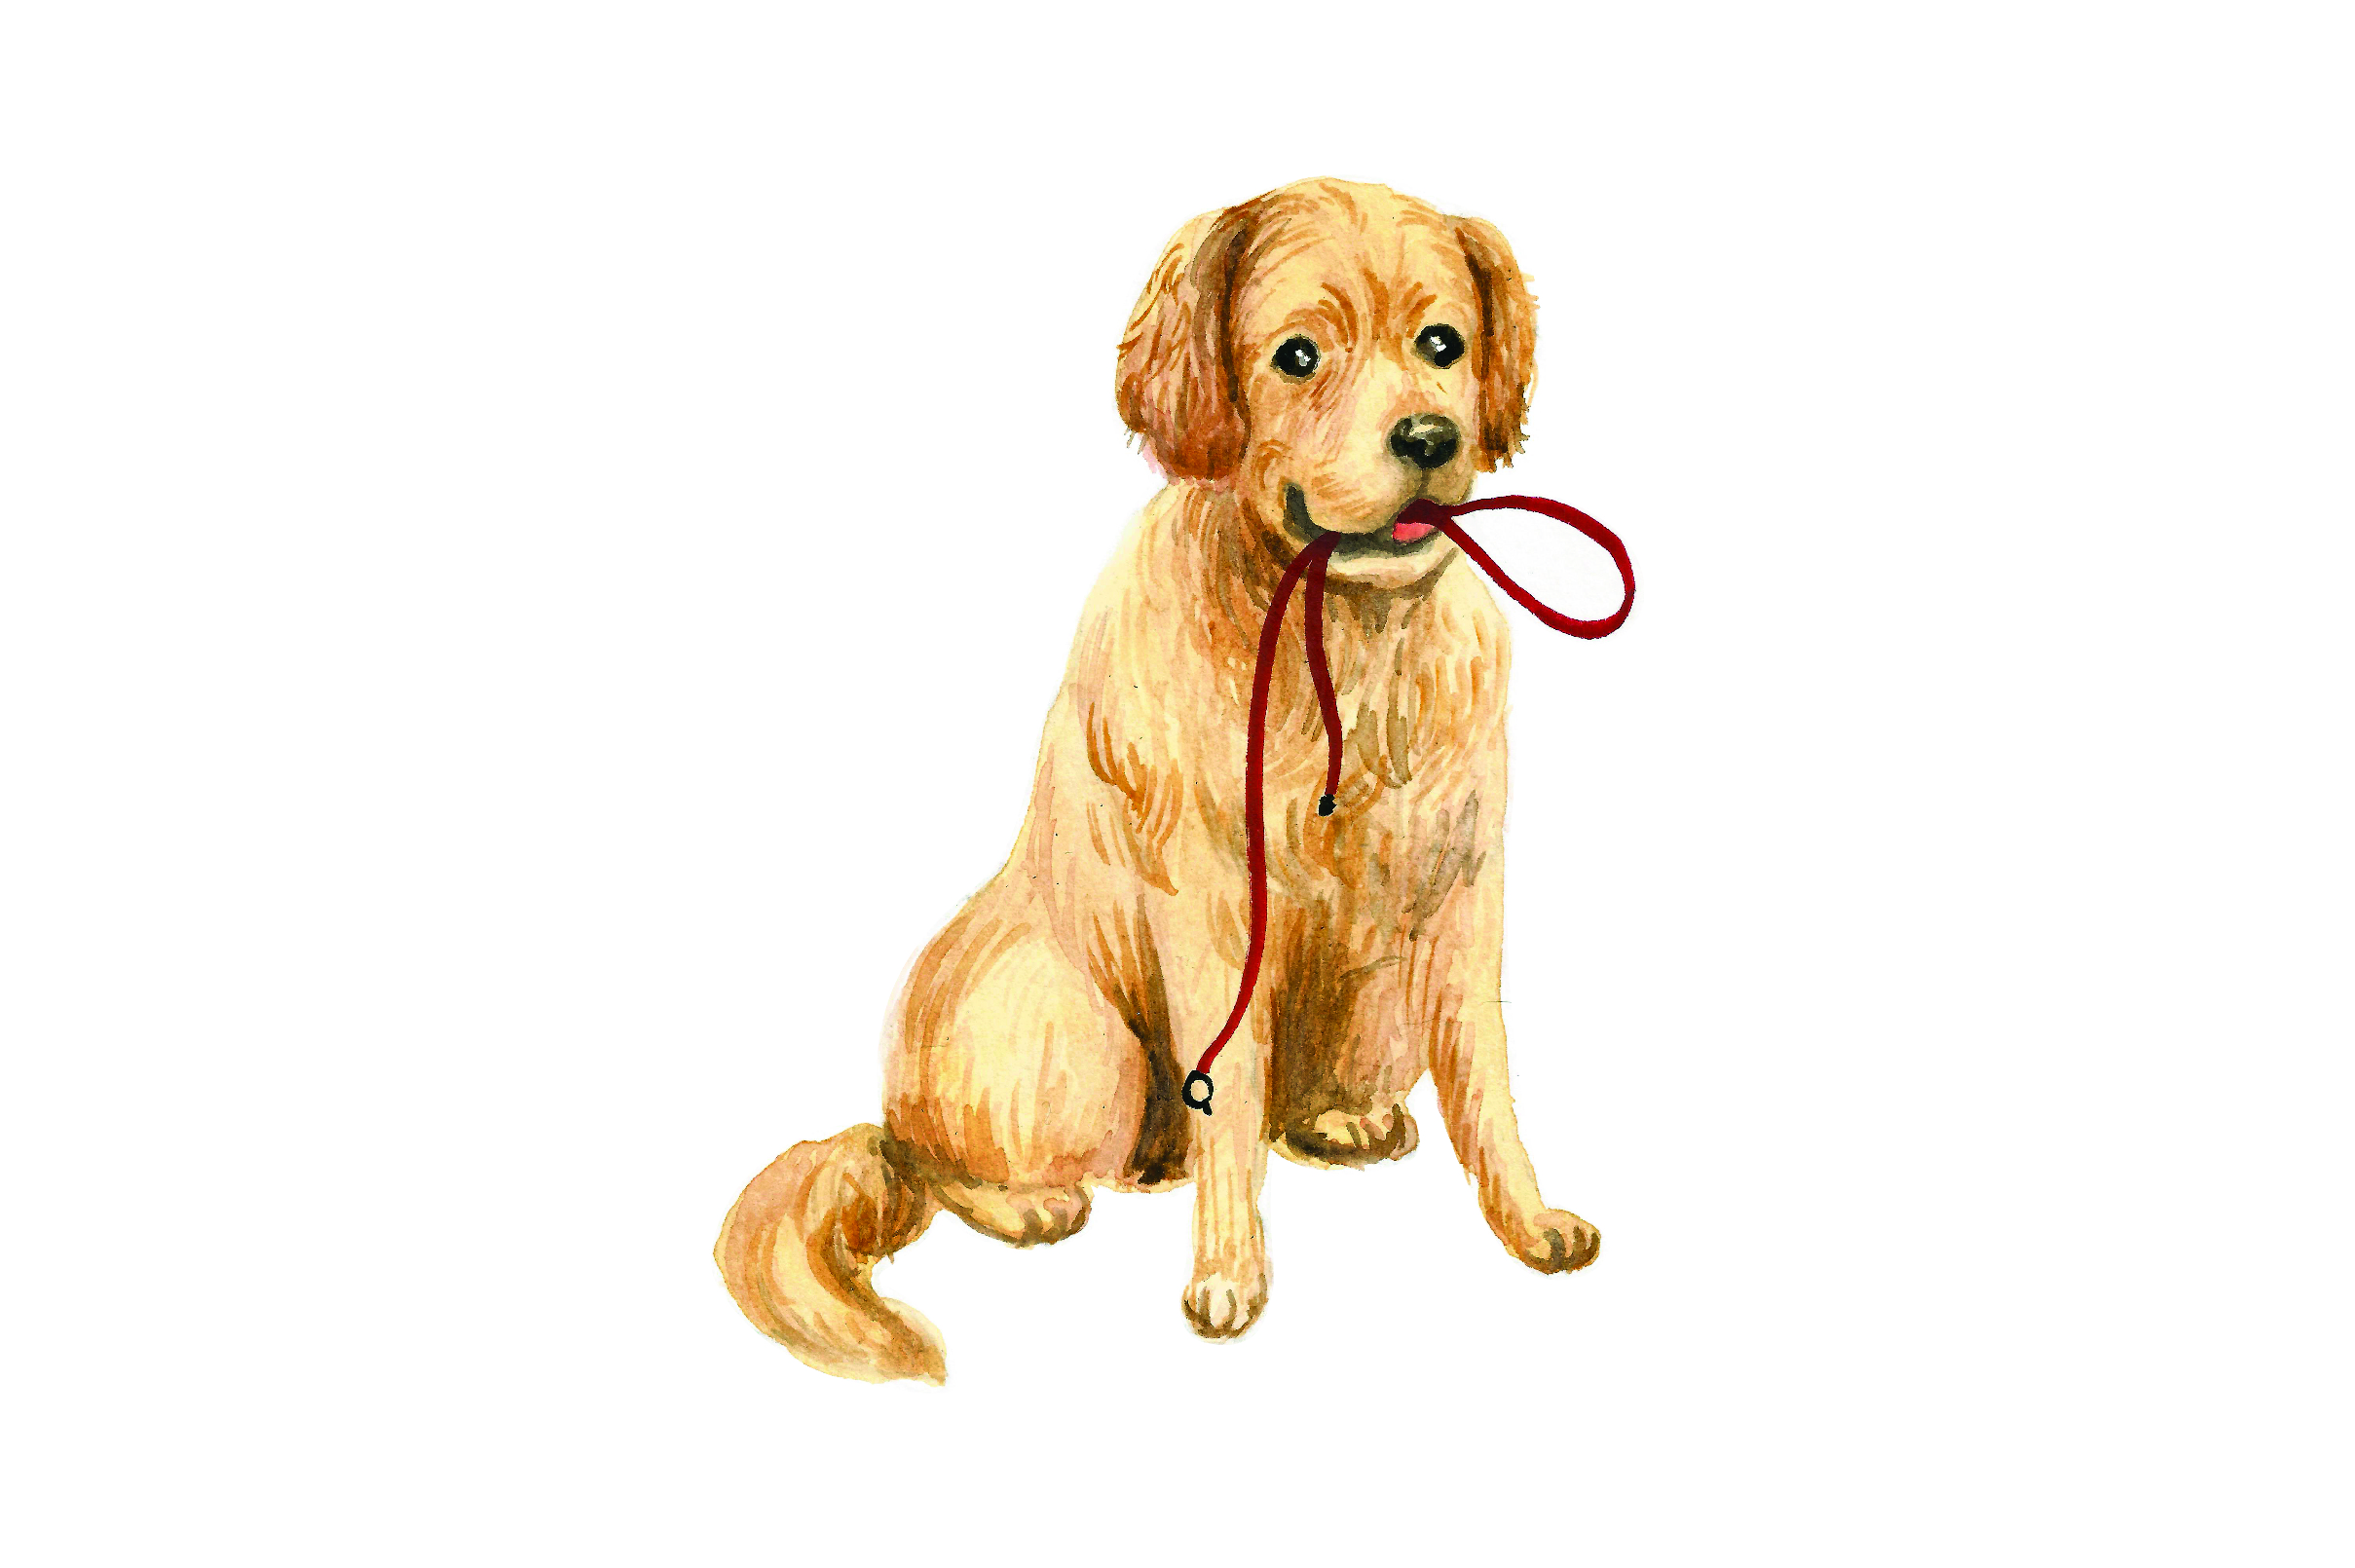 Download Free Golden Retriever With Leash In Mouth Svg Cut File By Creative for Cricut Explore, Silhouette and other cutting machines.